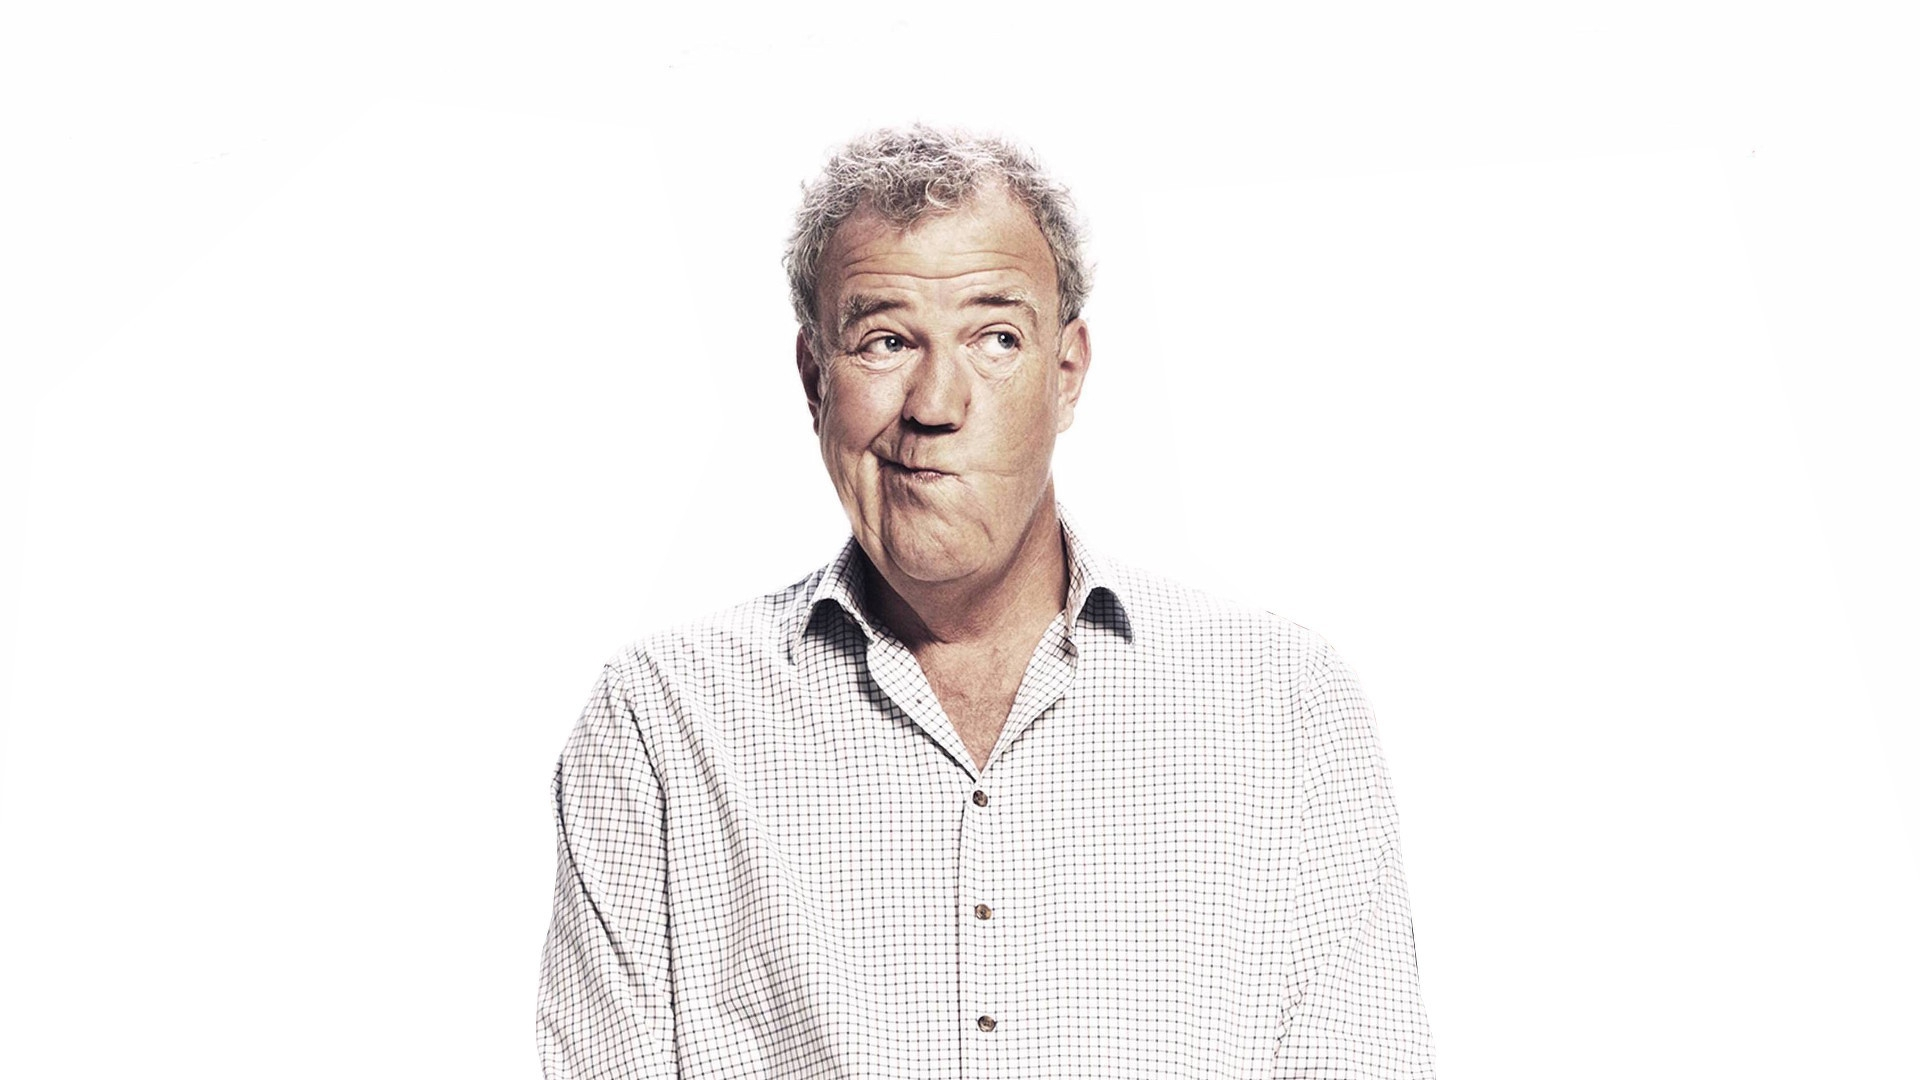 Jeremy Clarkson High Definition Wallpapers